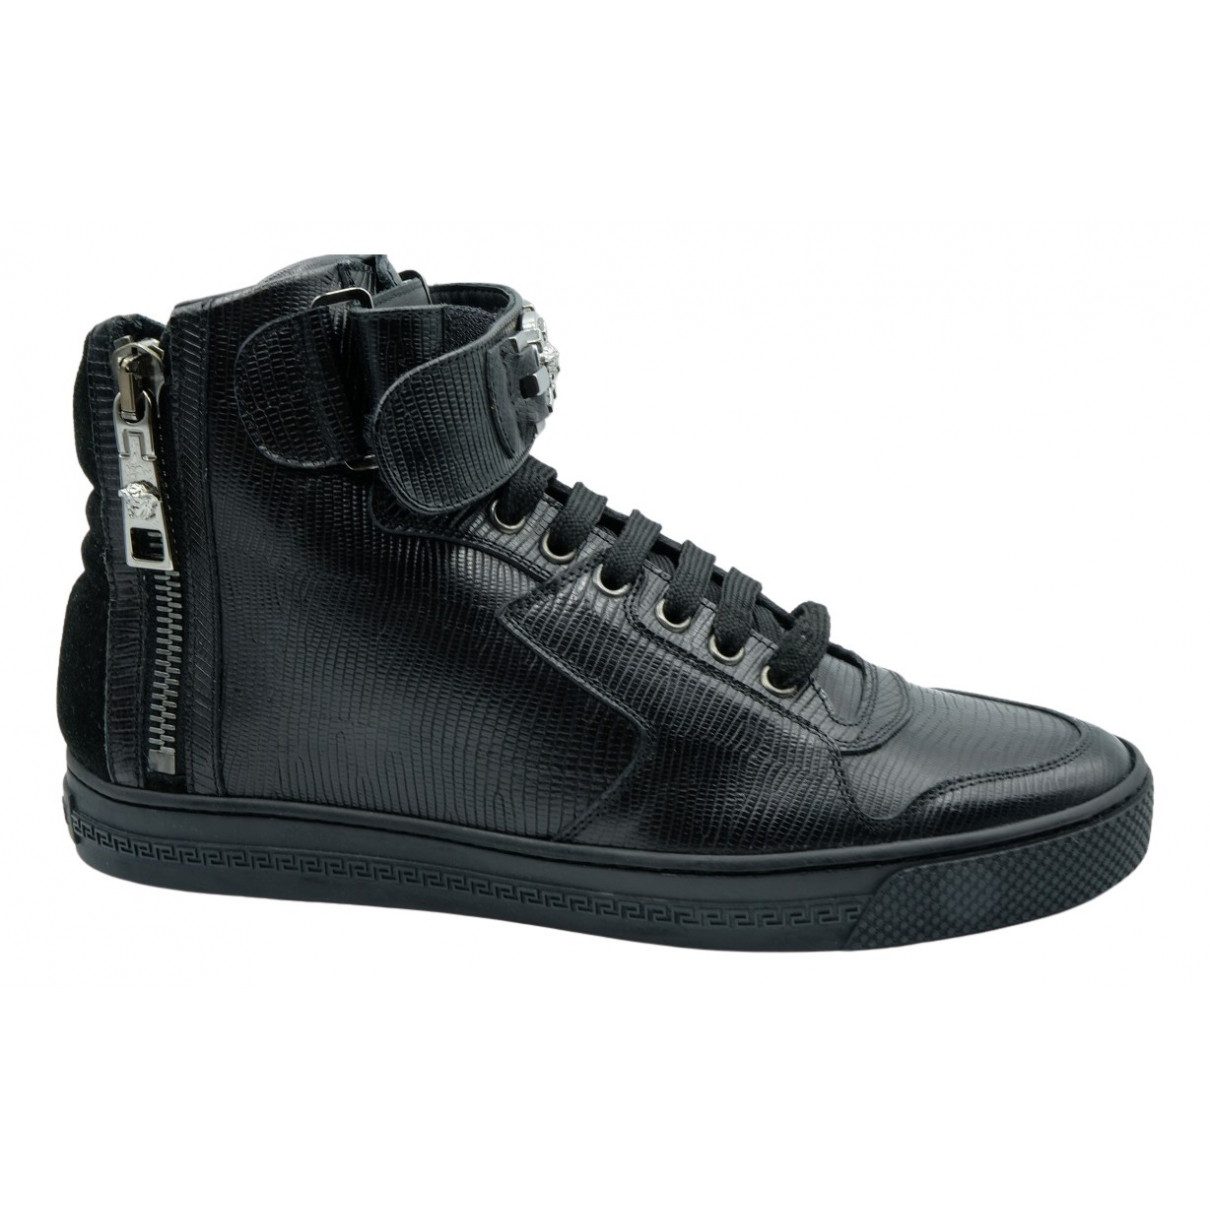 Versace N Black Leather Trainers for Women 39 EU